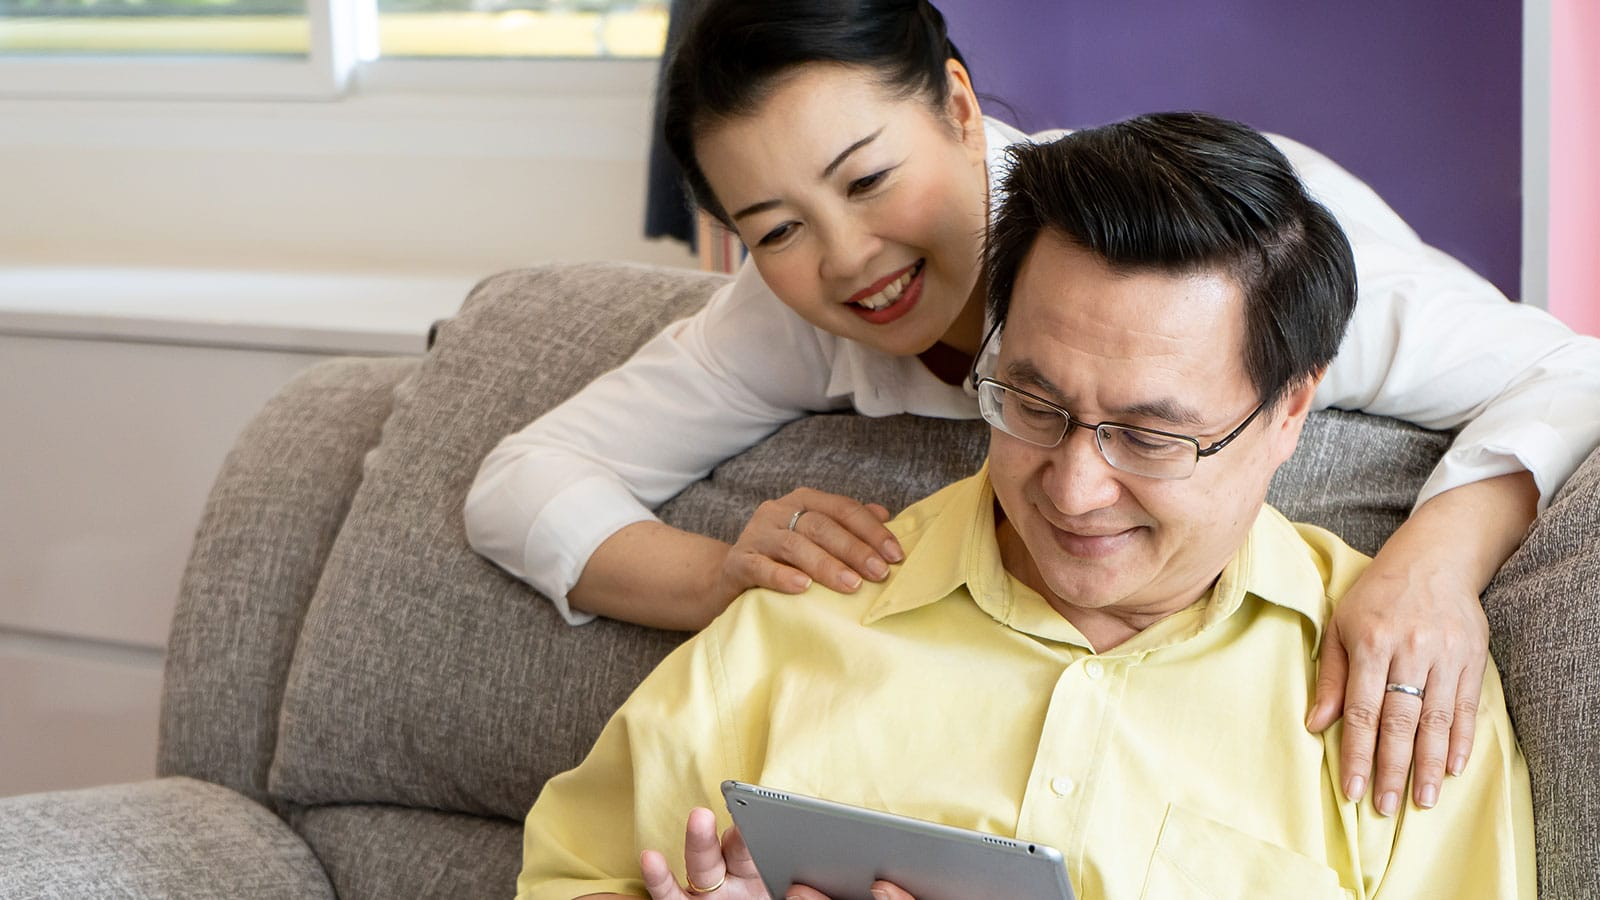 Eddy & Schein services can allow you more free time to spend with your loved ones.